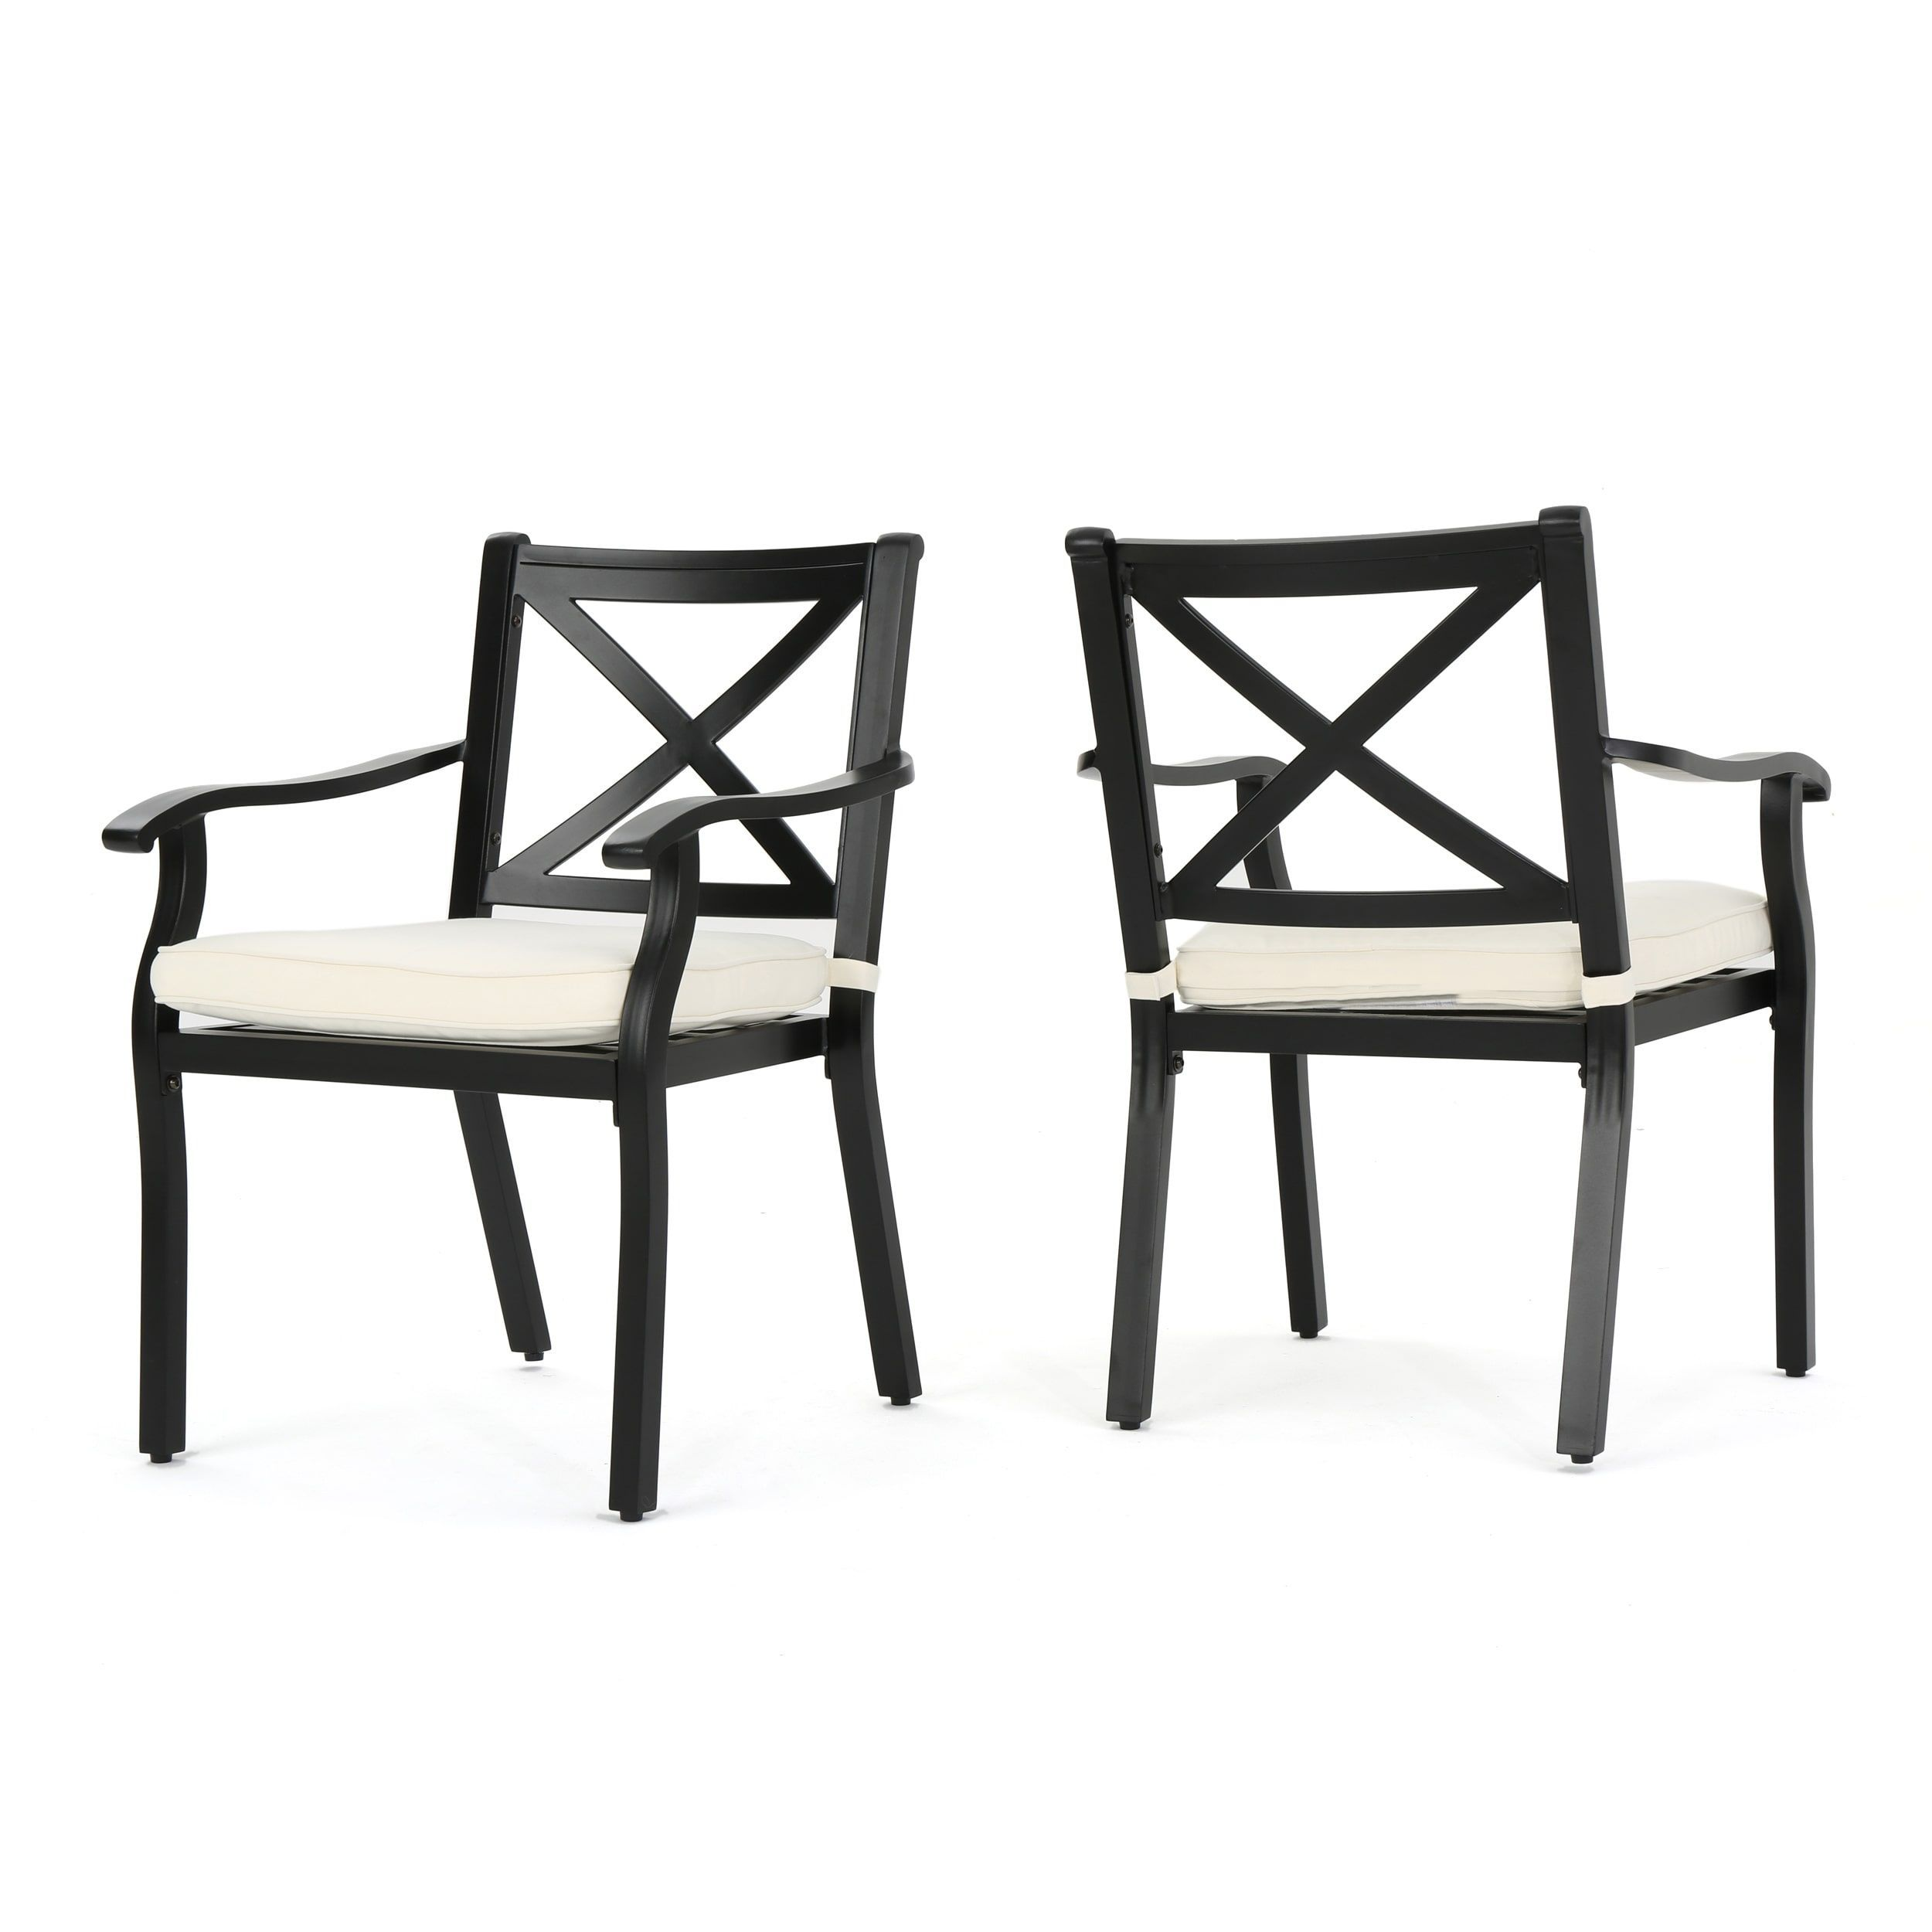 Exuma Outdoor Black Cast Aluminum Dining Chairs With Ivory Water